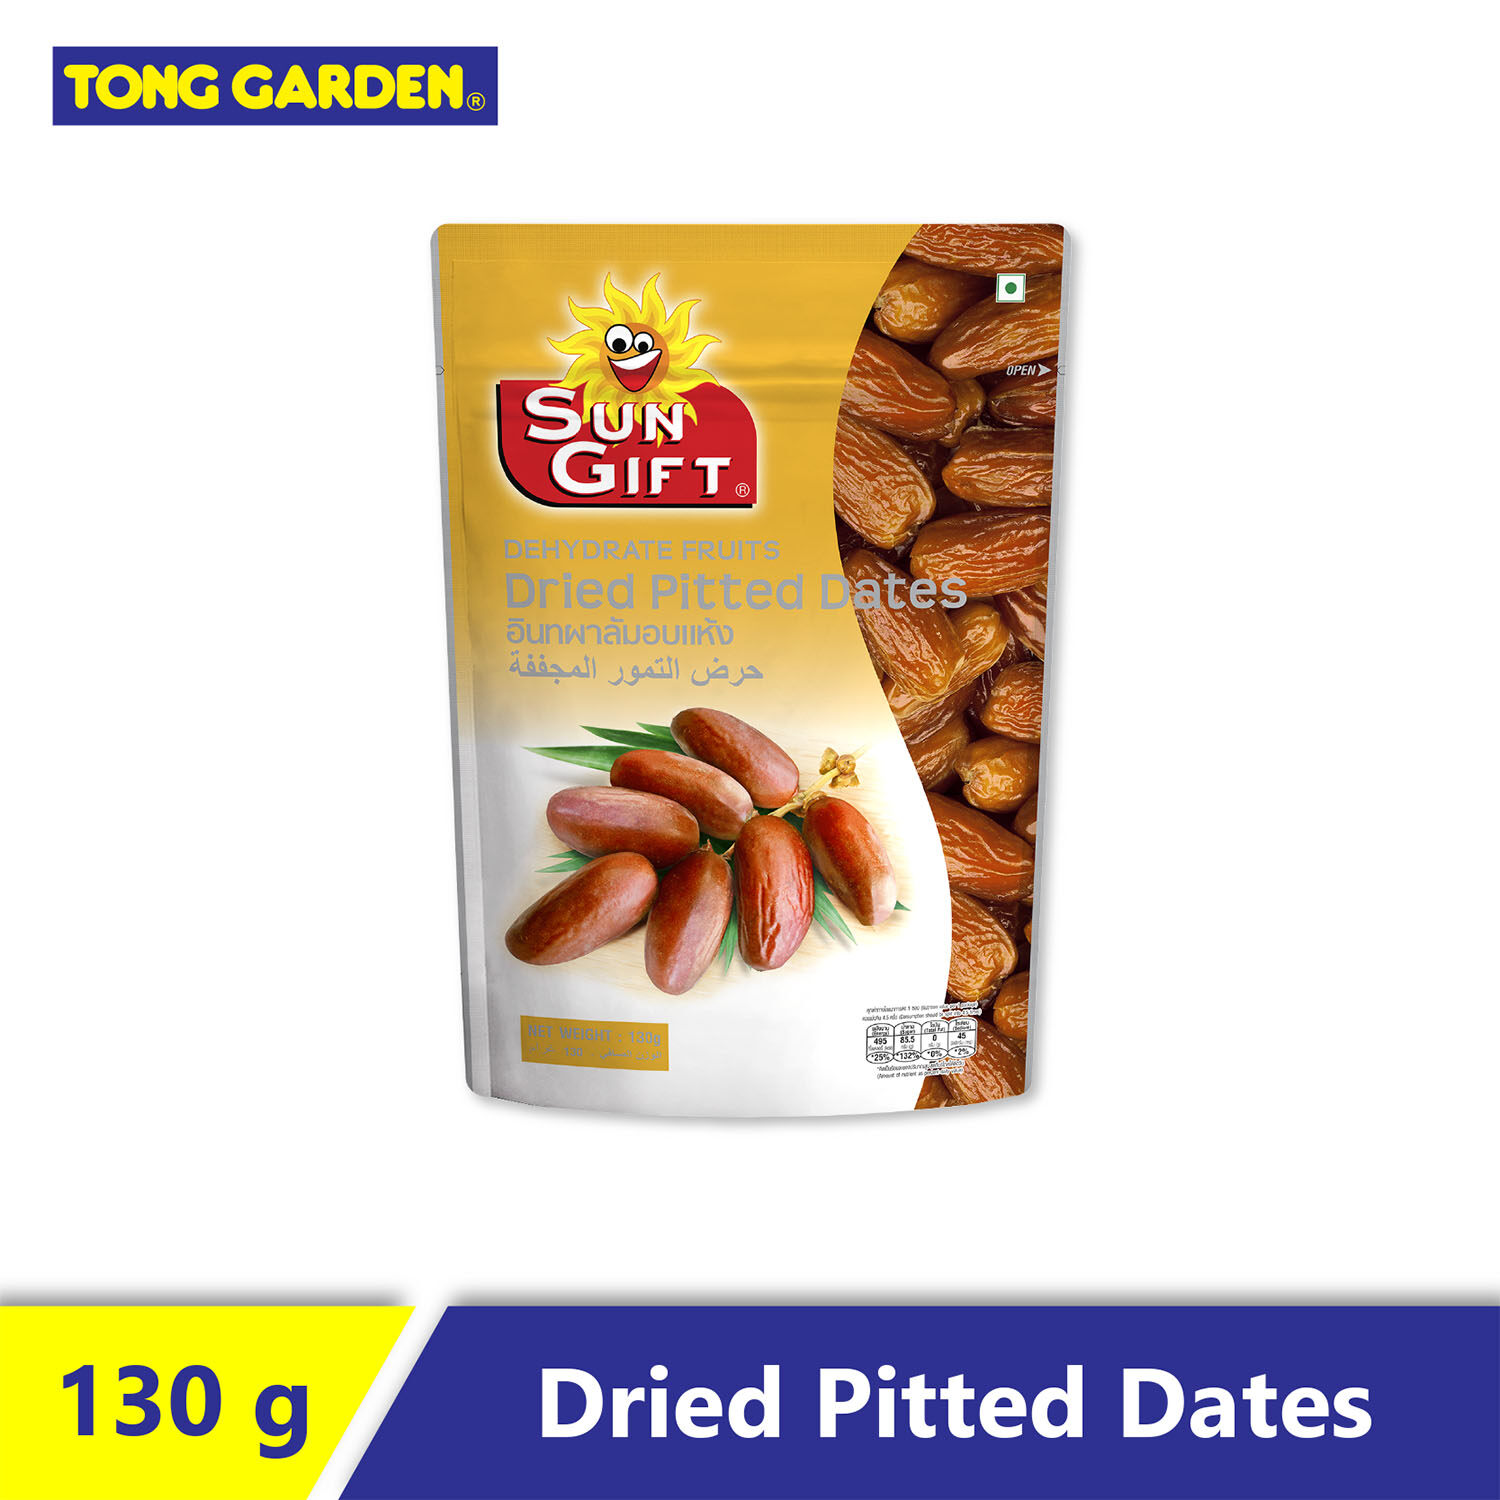 SUNGIFT Dried Pitted Dates 130G